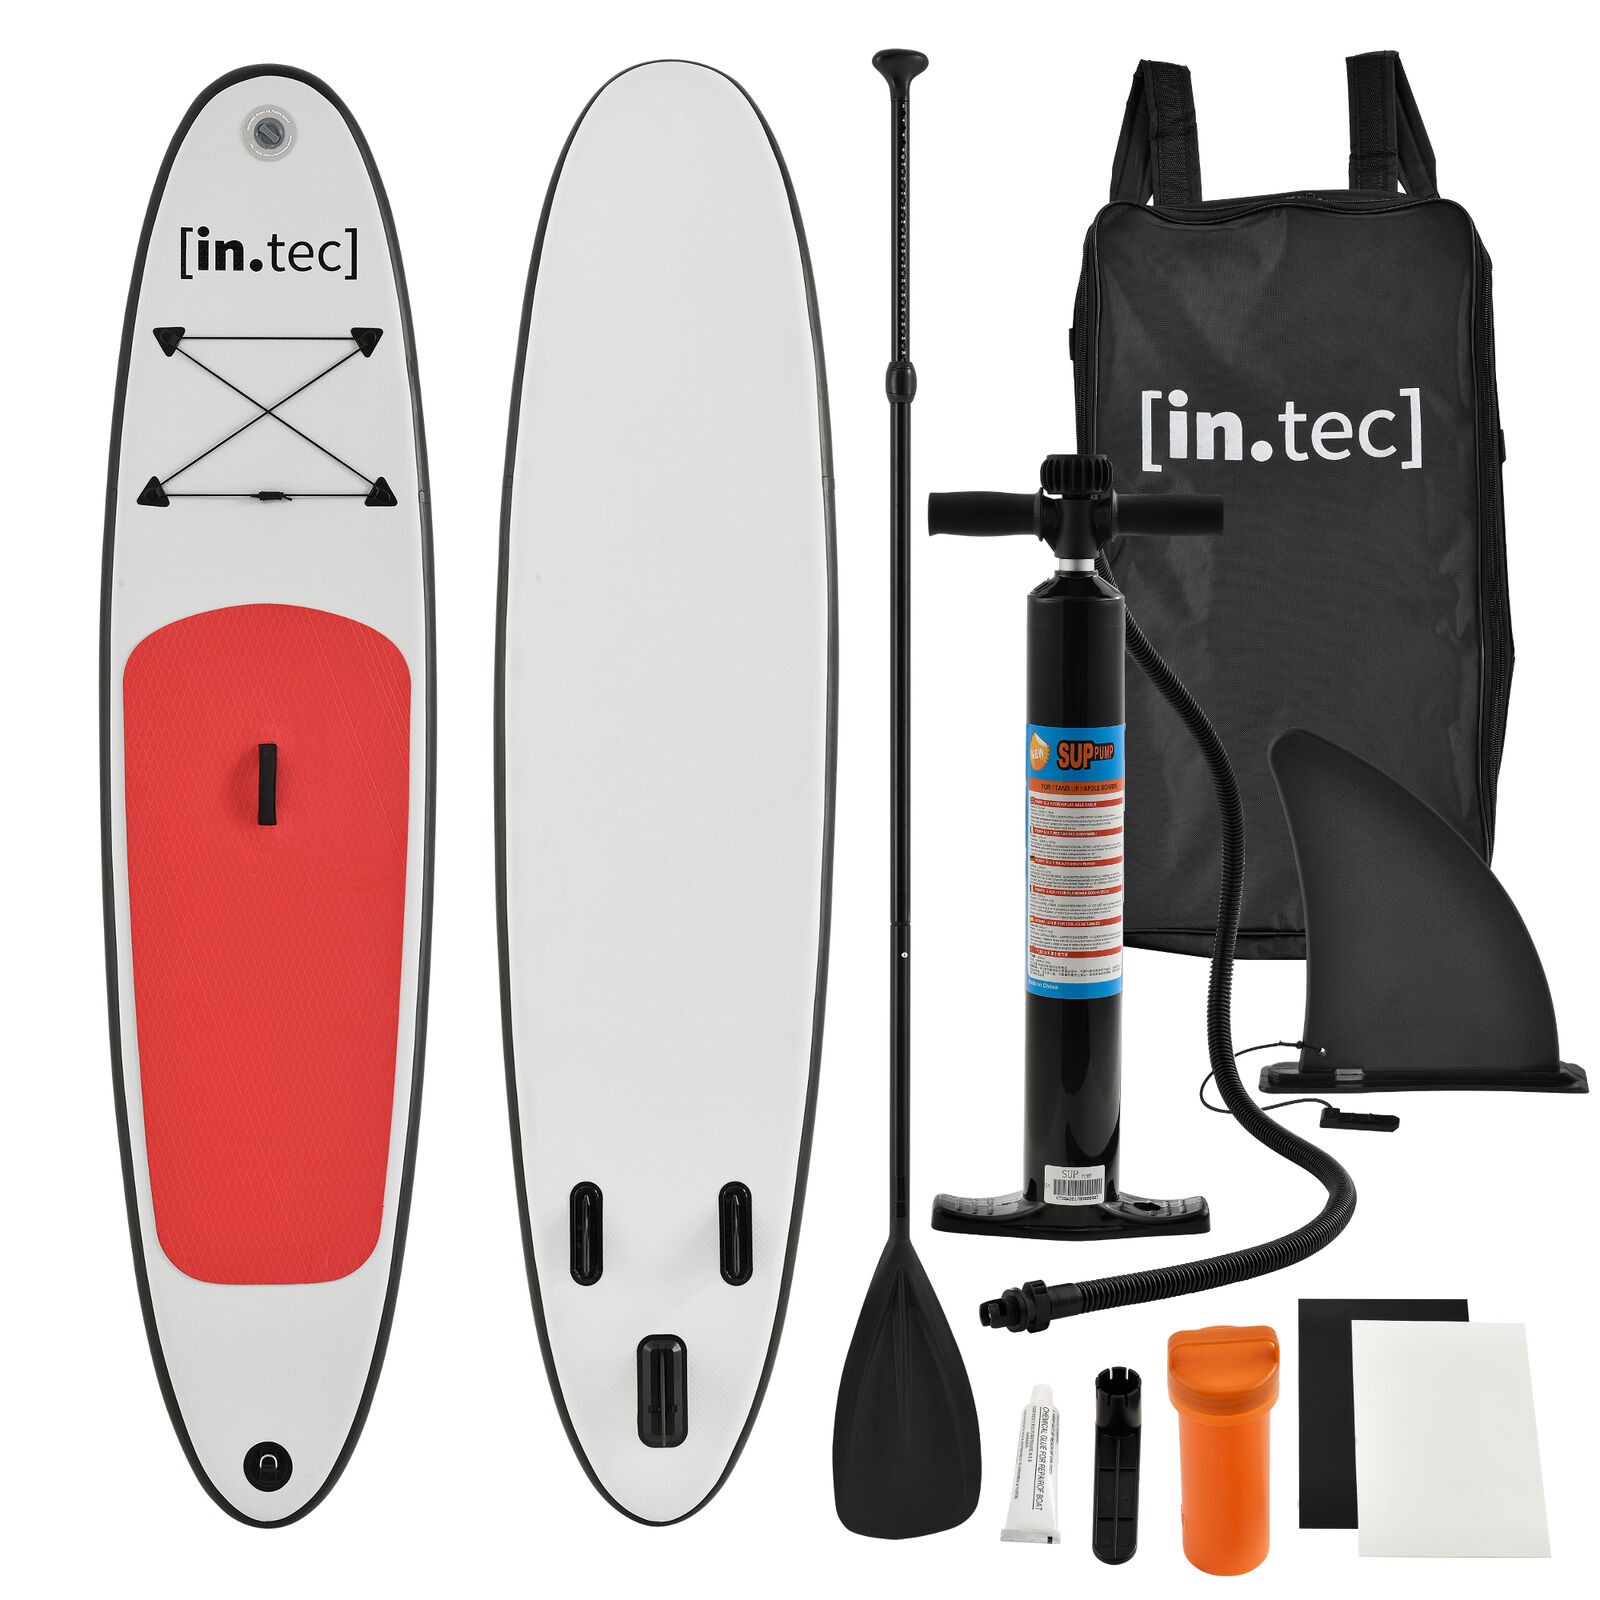 [in.tec]® SUP Paddle Board Surfboard Stand-Up Inflatable Board  305x71x10cm Red